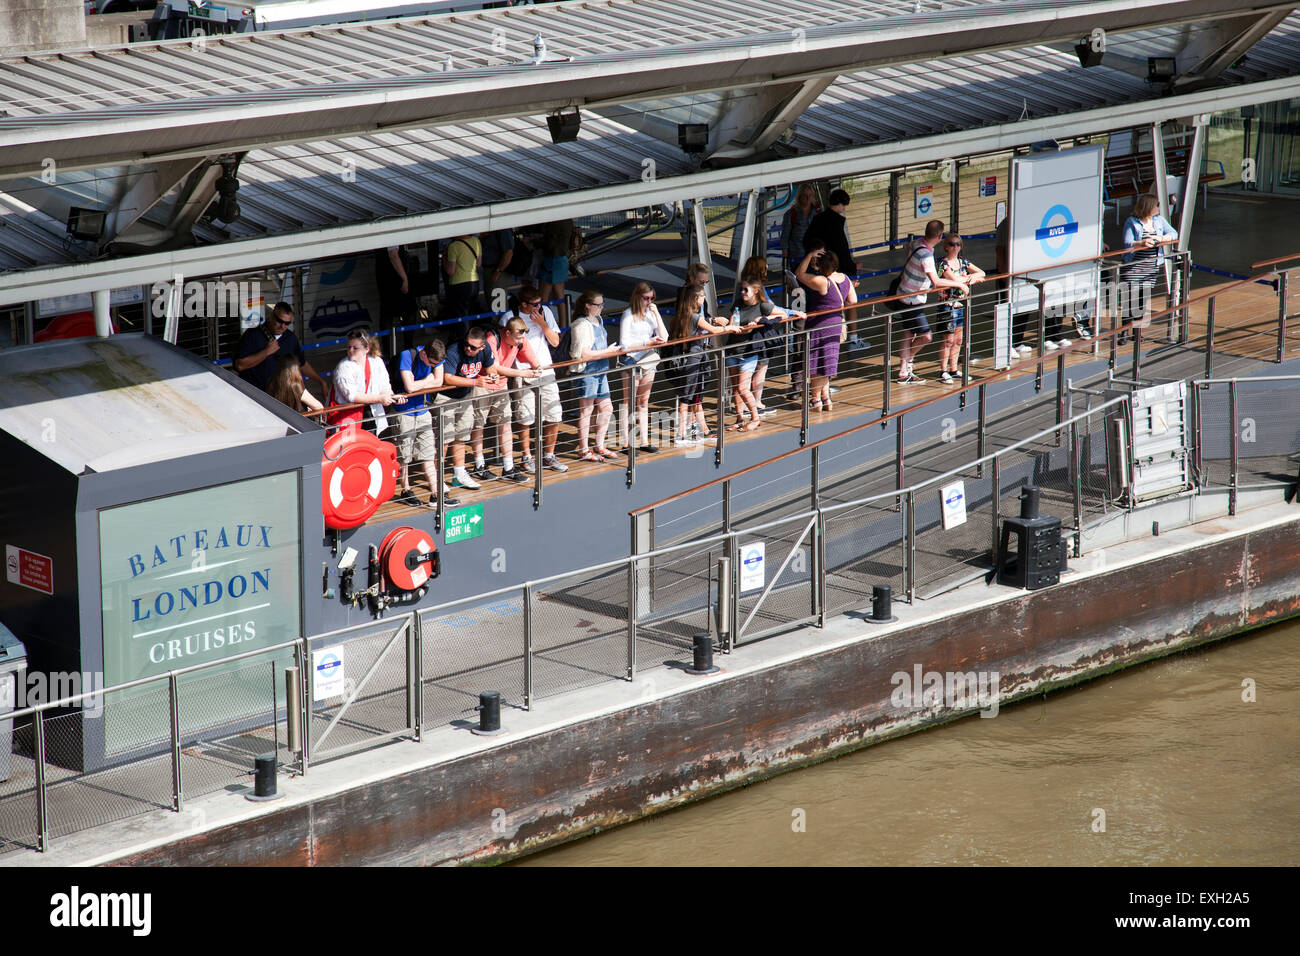 People Waiting on Cruise Boat on River Thames Pier in London UK - Stock Image